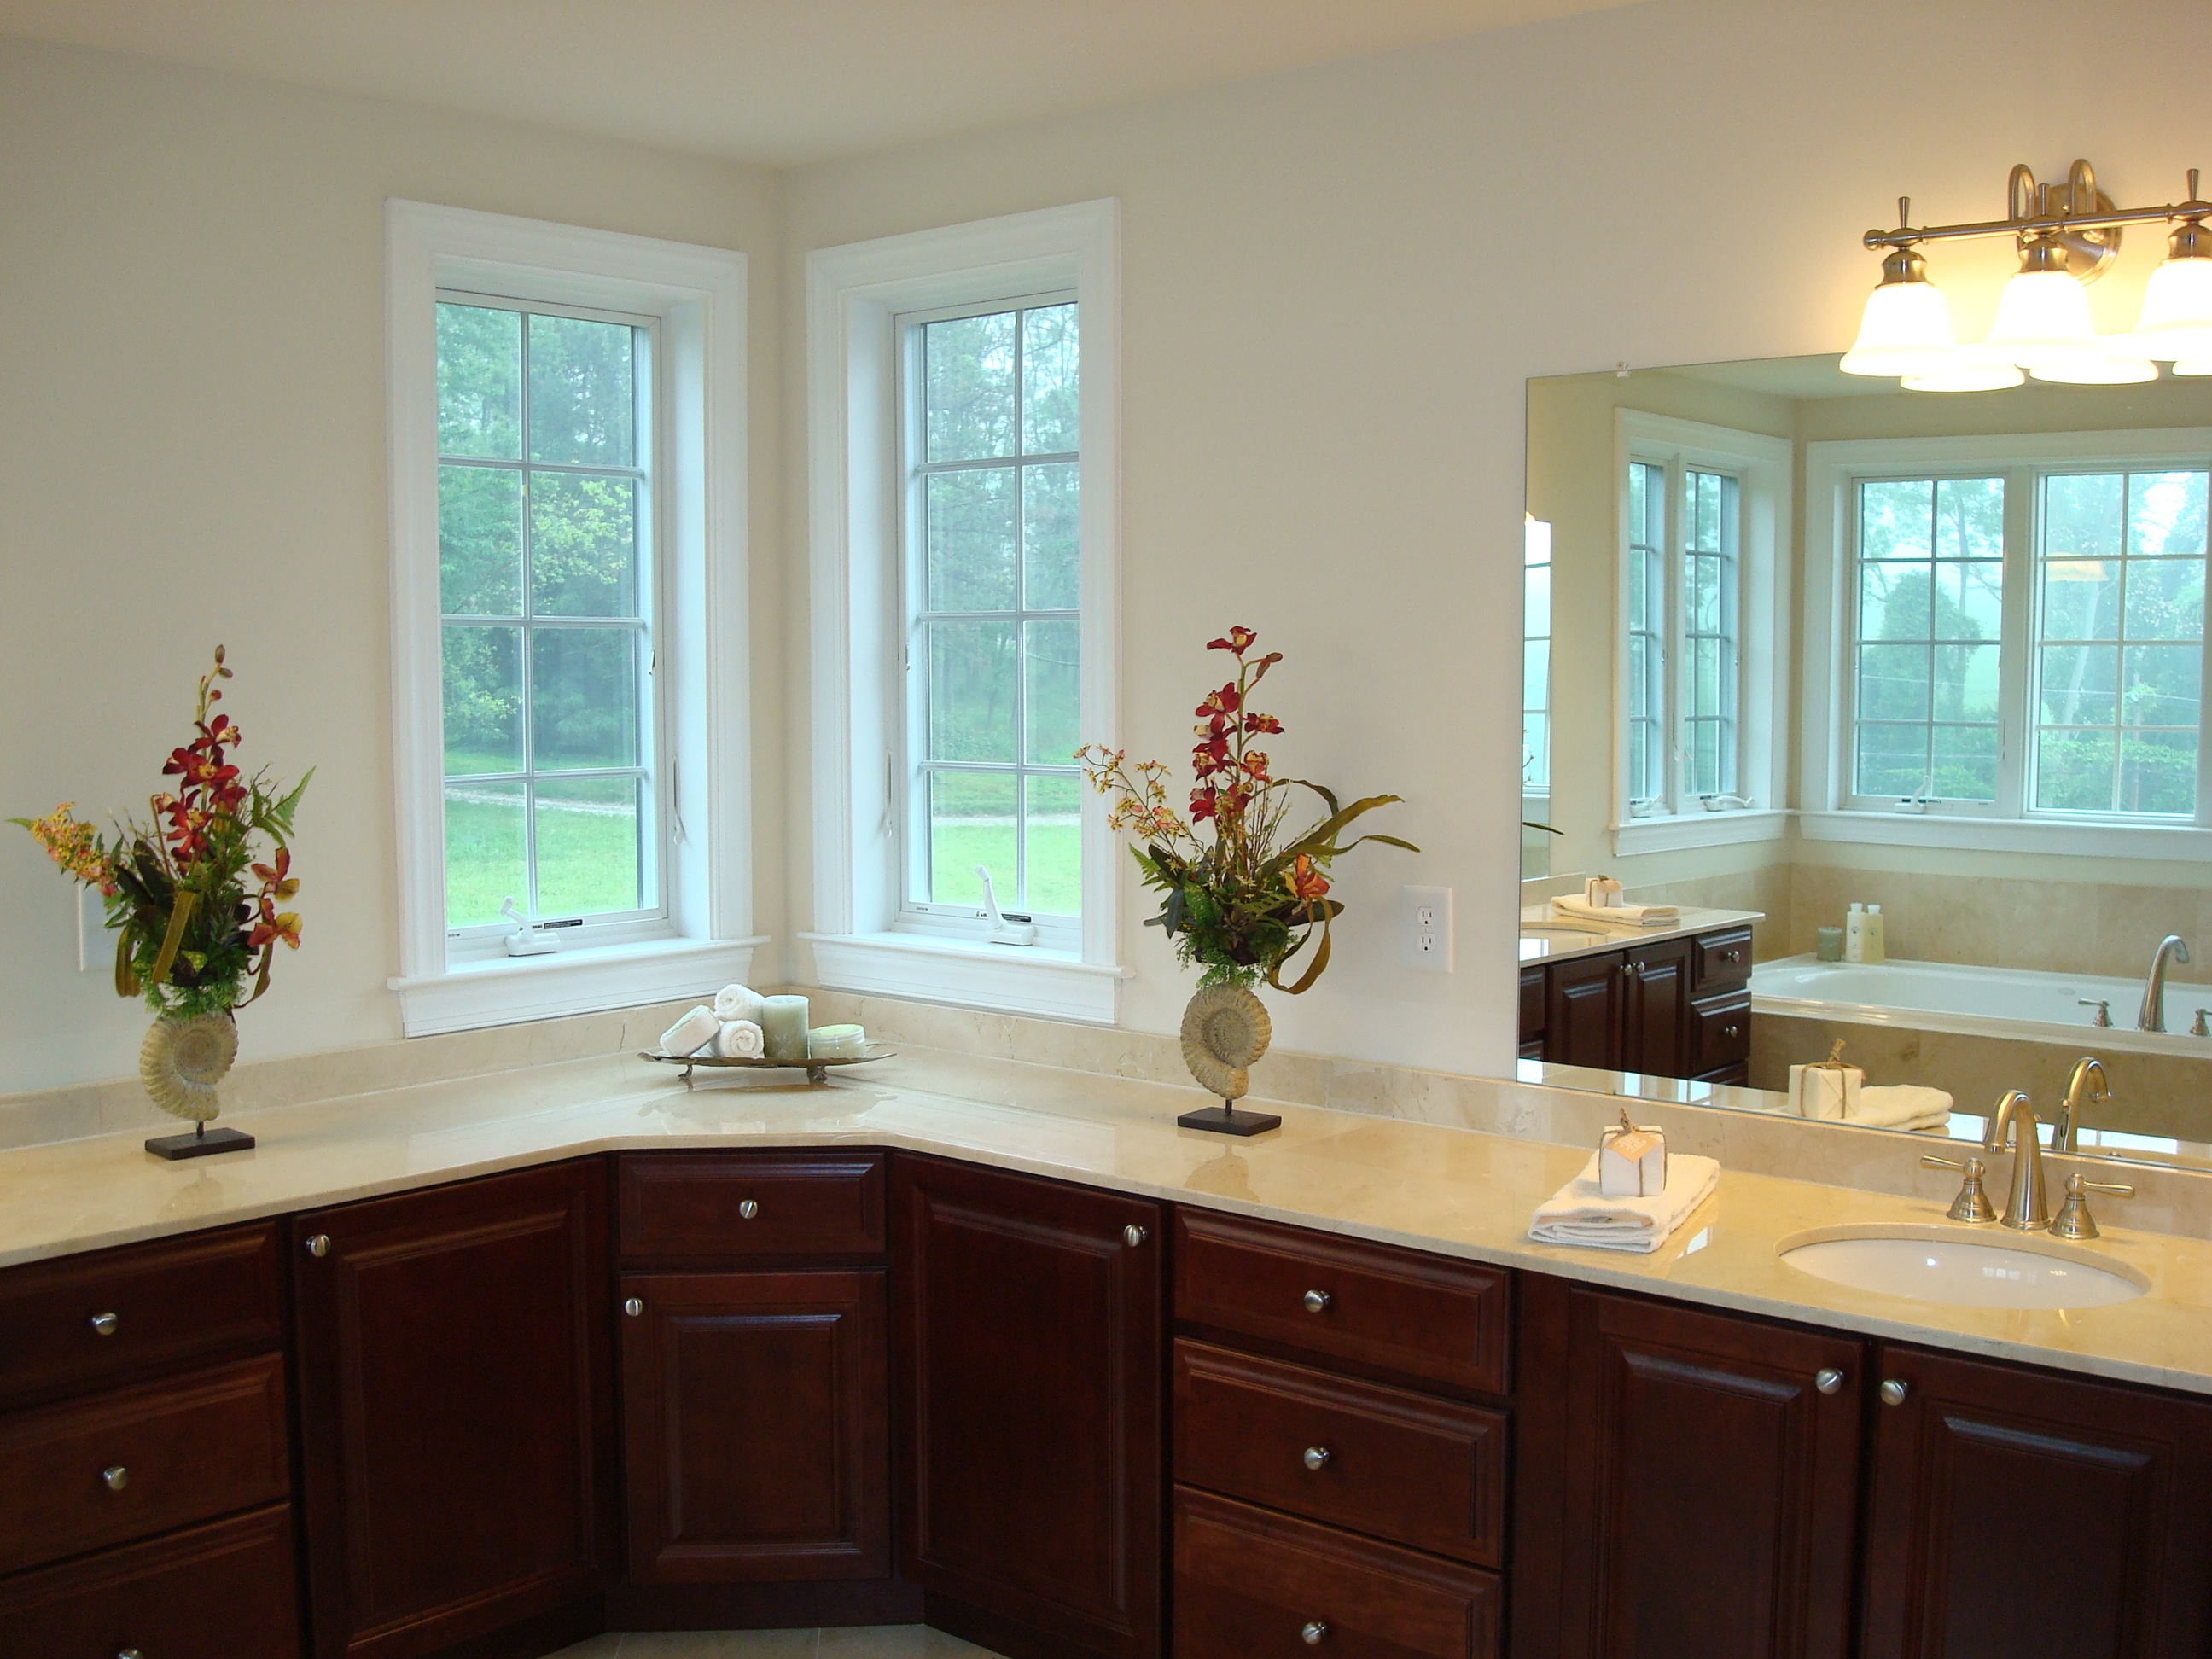 kitchens bathrooms kitchen and bathroom remodeling Bathroom Remodeling Kitchen